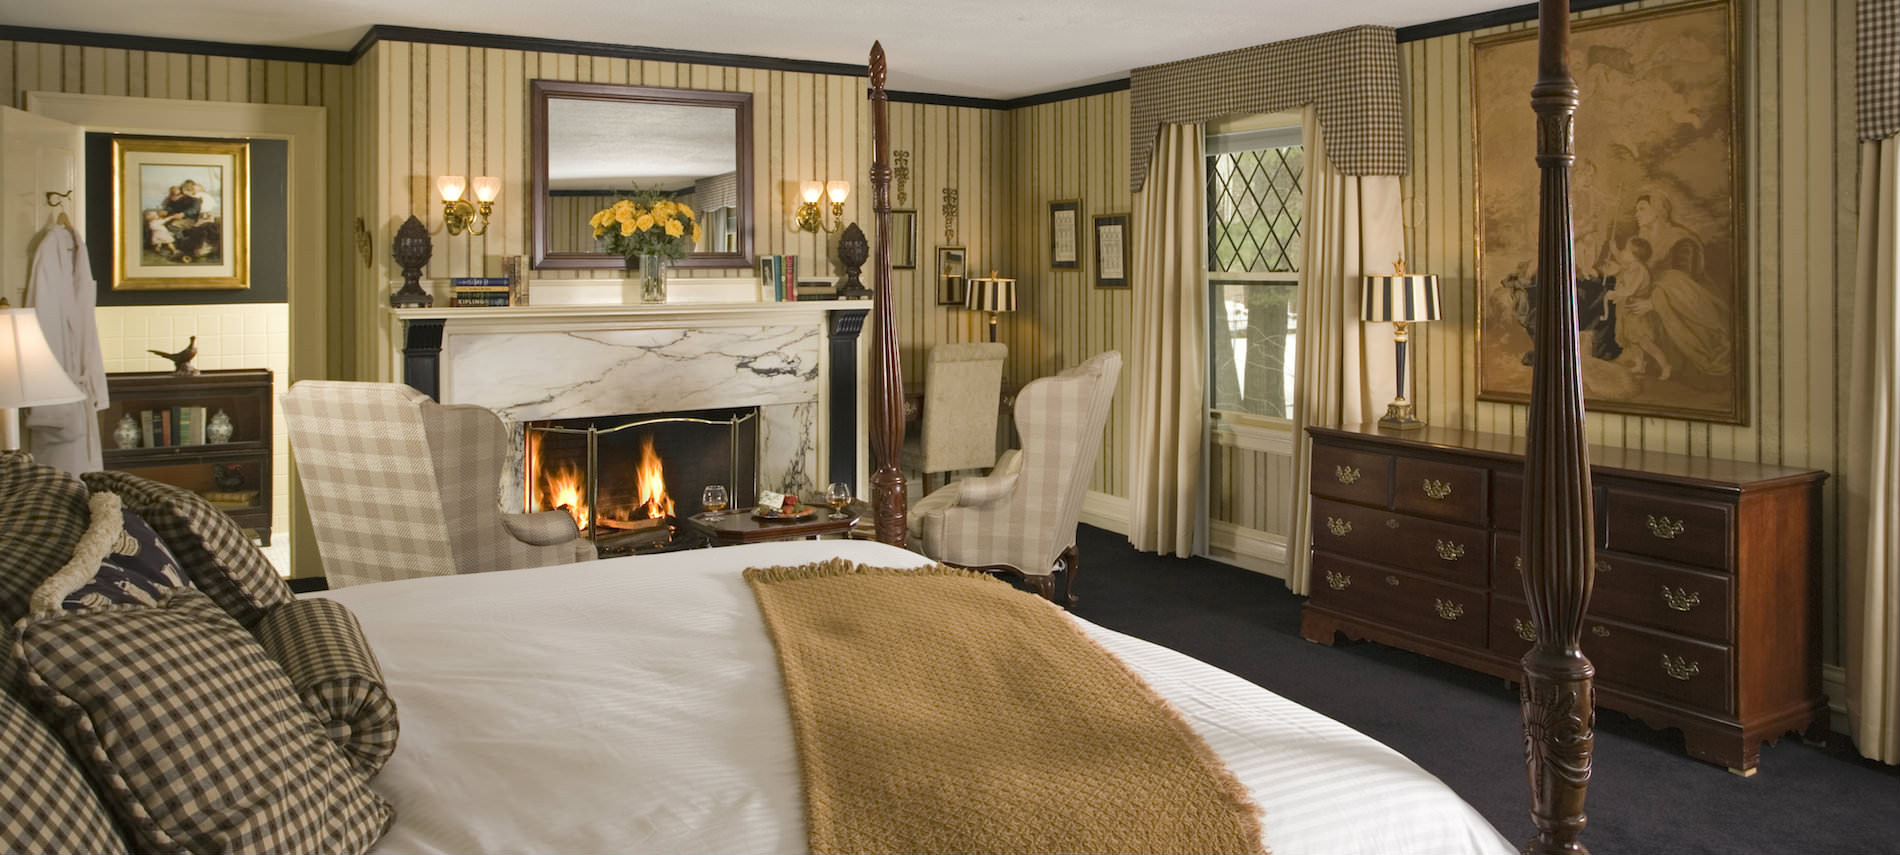 Guest suite at Manor on Golden Pond